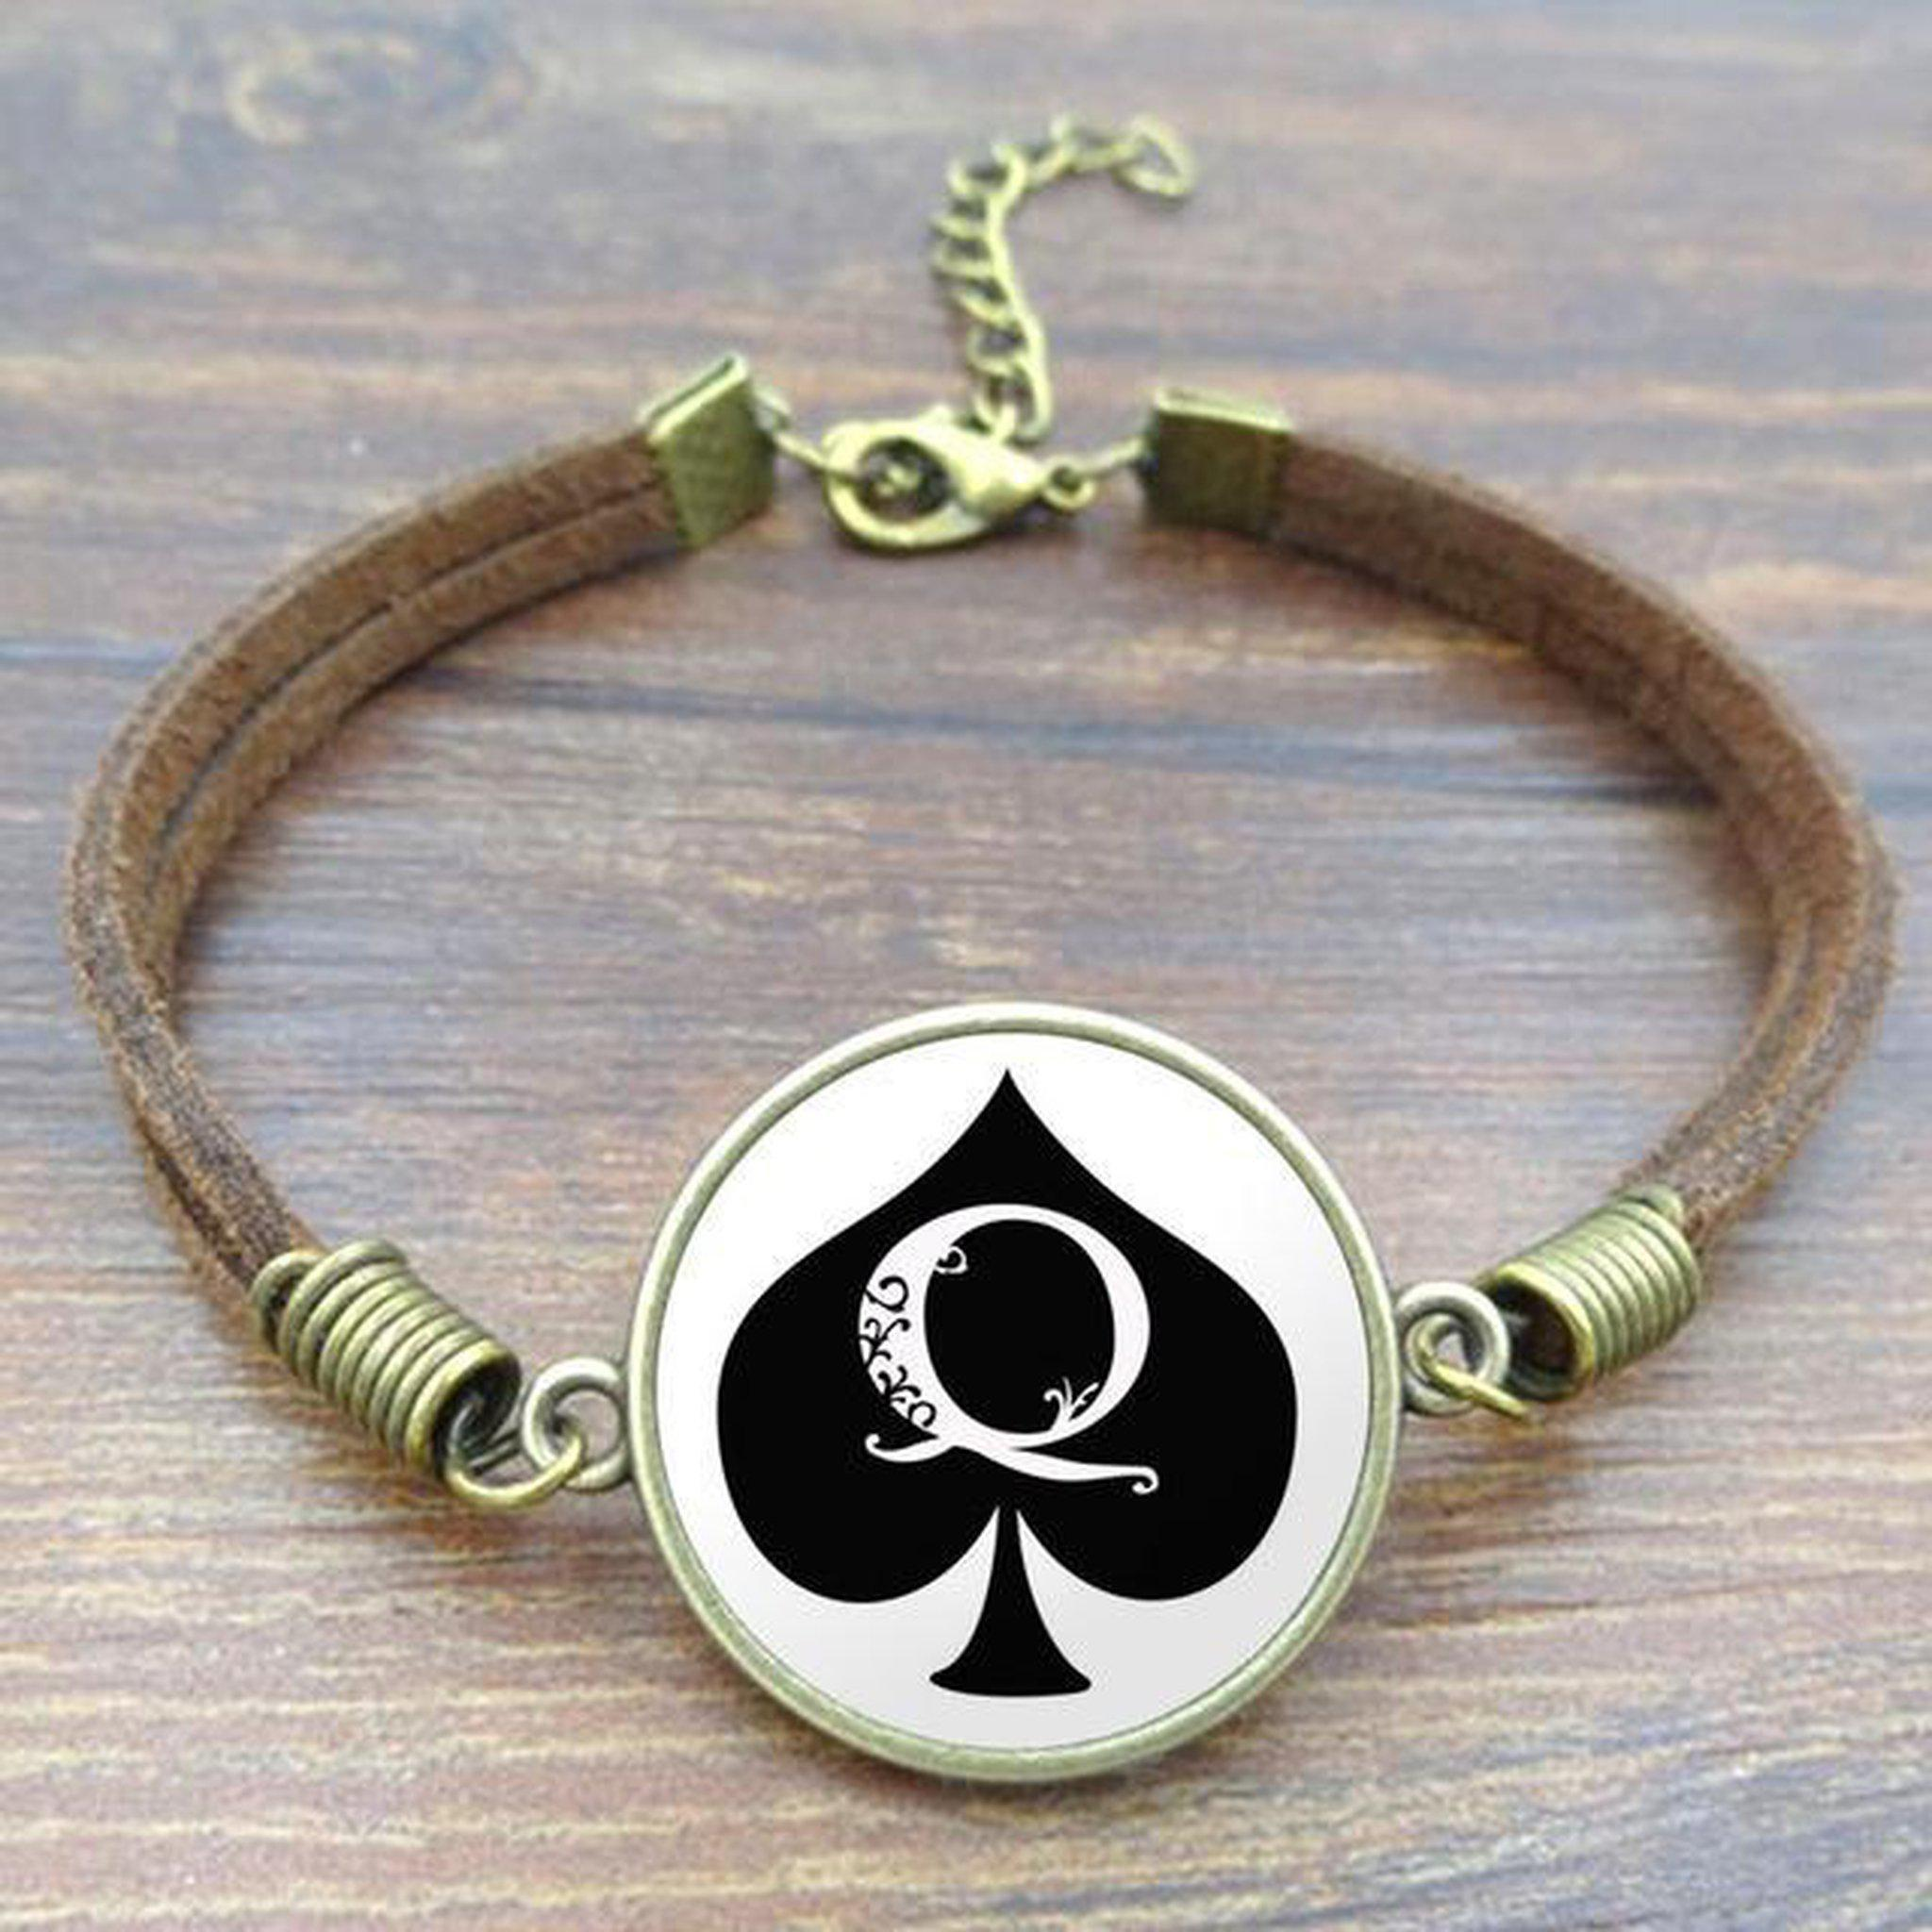 Vintage Queens of Spades Bracelet-Good Girl xox-S3570-buy-bdsm-bondage-gear-tools-toys-online-good-girl-xox